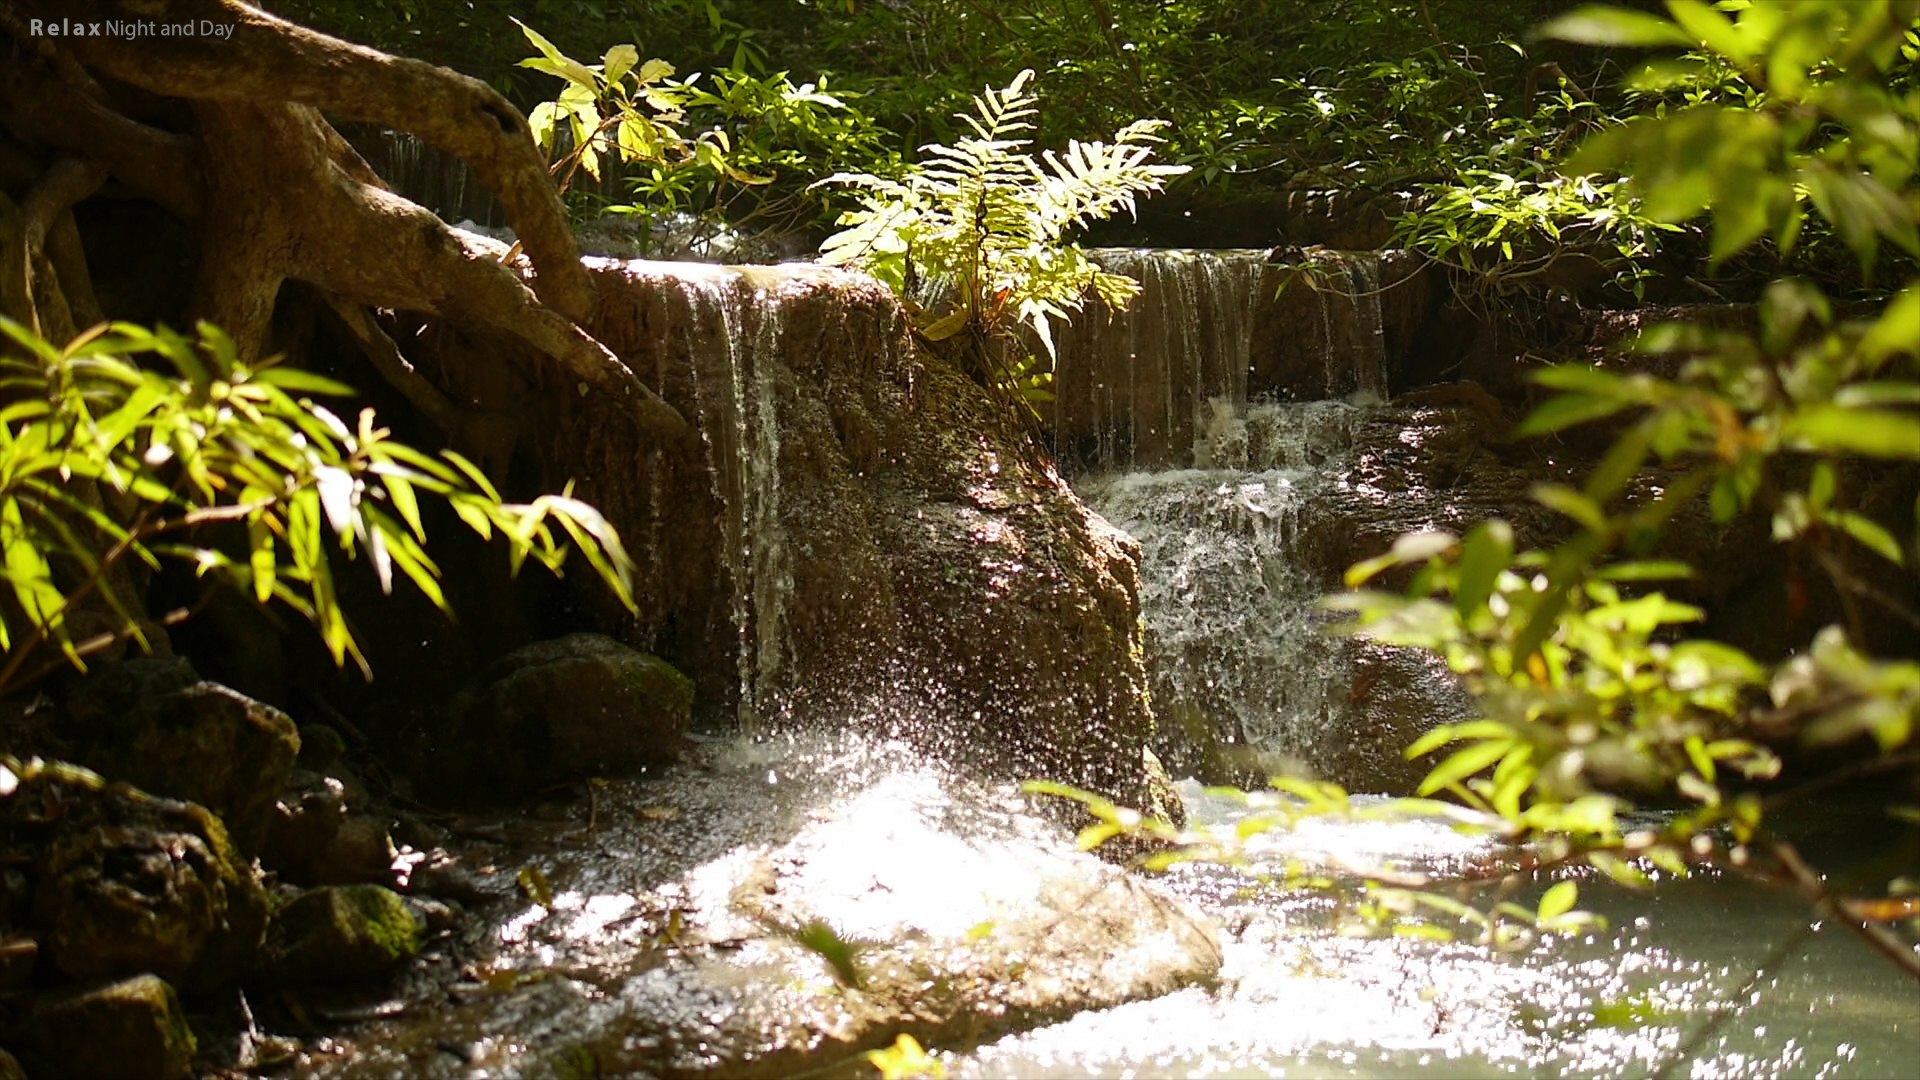 ZEN Music - 4K, ZEN River with Beautiful Zen Garden Waterfall, Beautiful Nature Stream for Stress Re